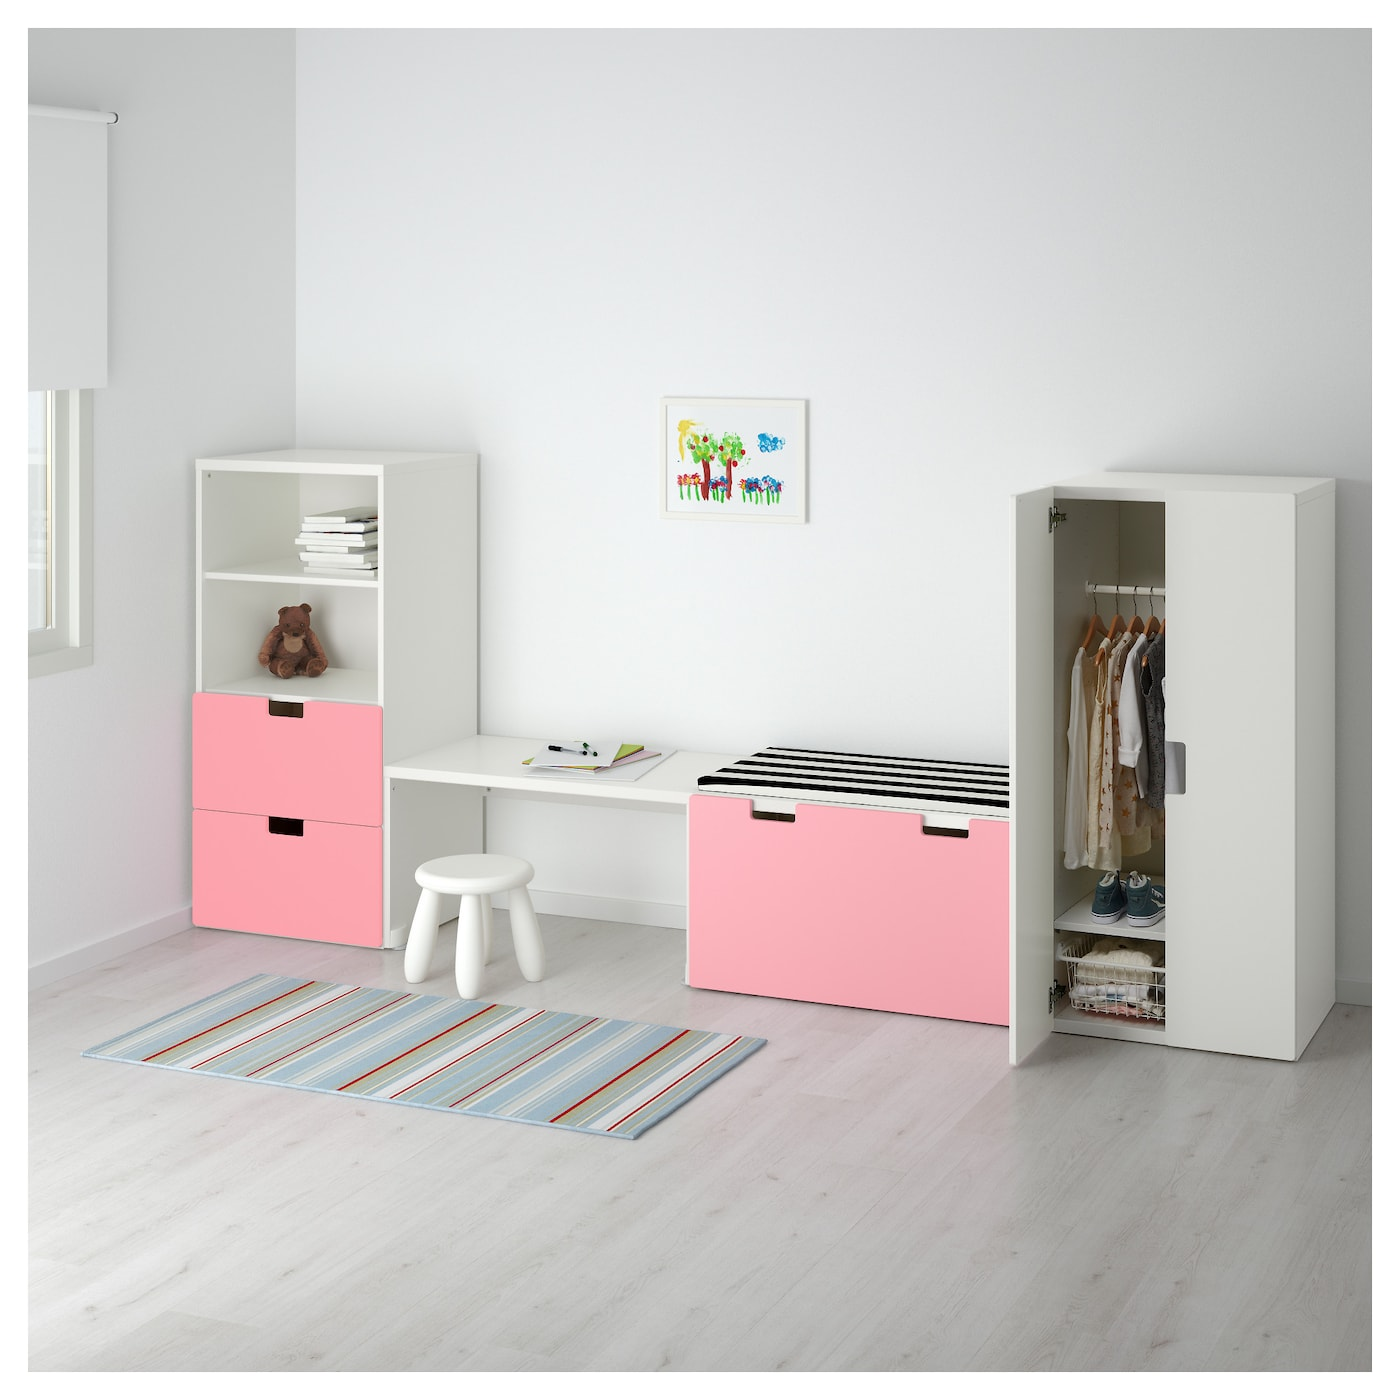 stuva storage combination with bench white pink 300x50x128 cm ikea. Black Bedroom Furniture Sets. Home Design Ideas